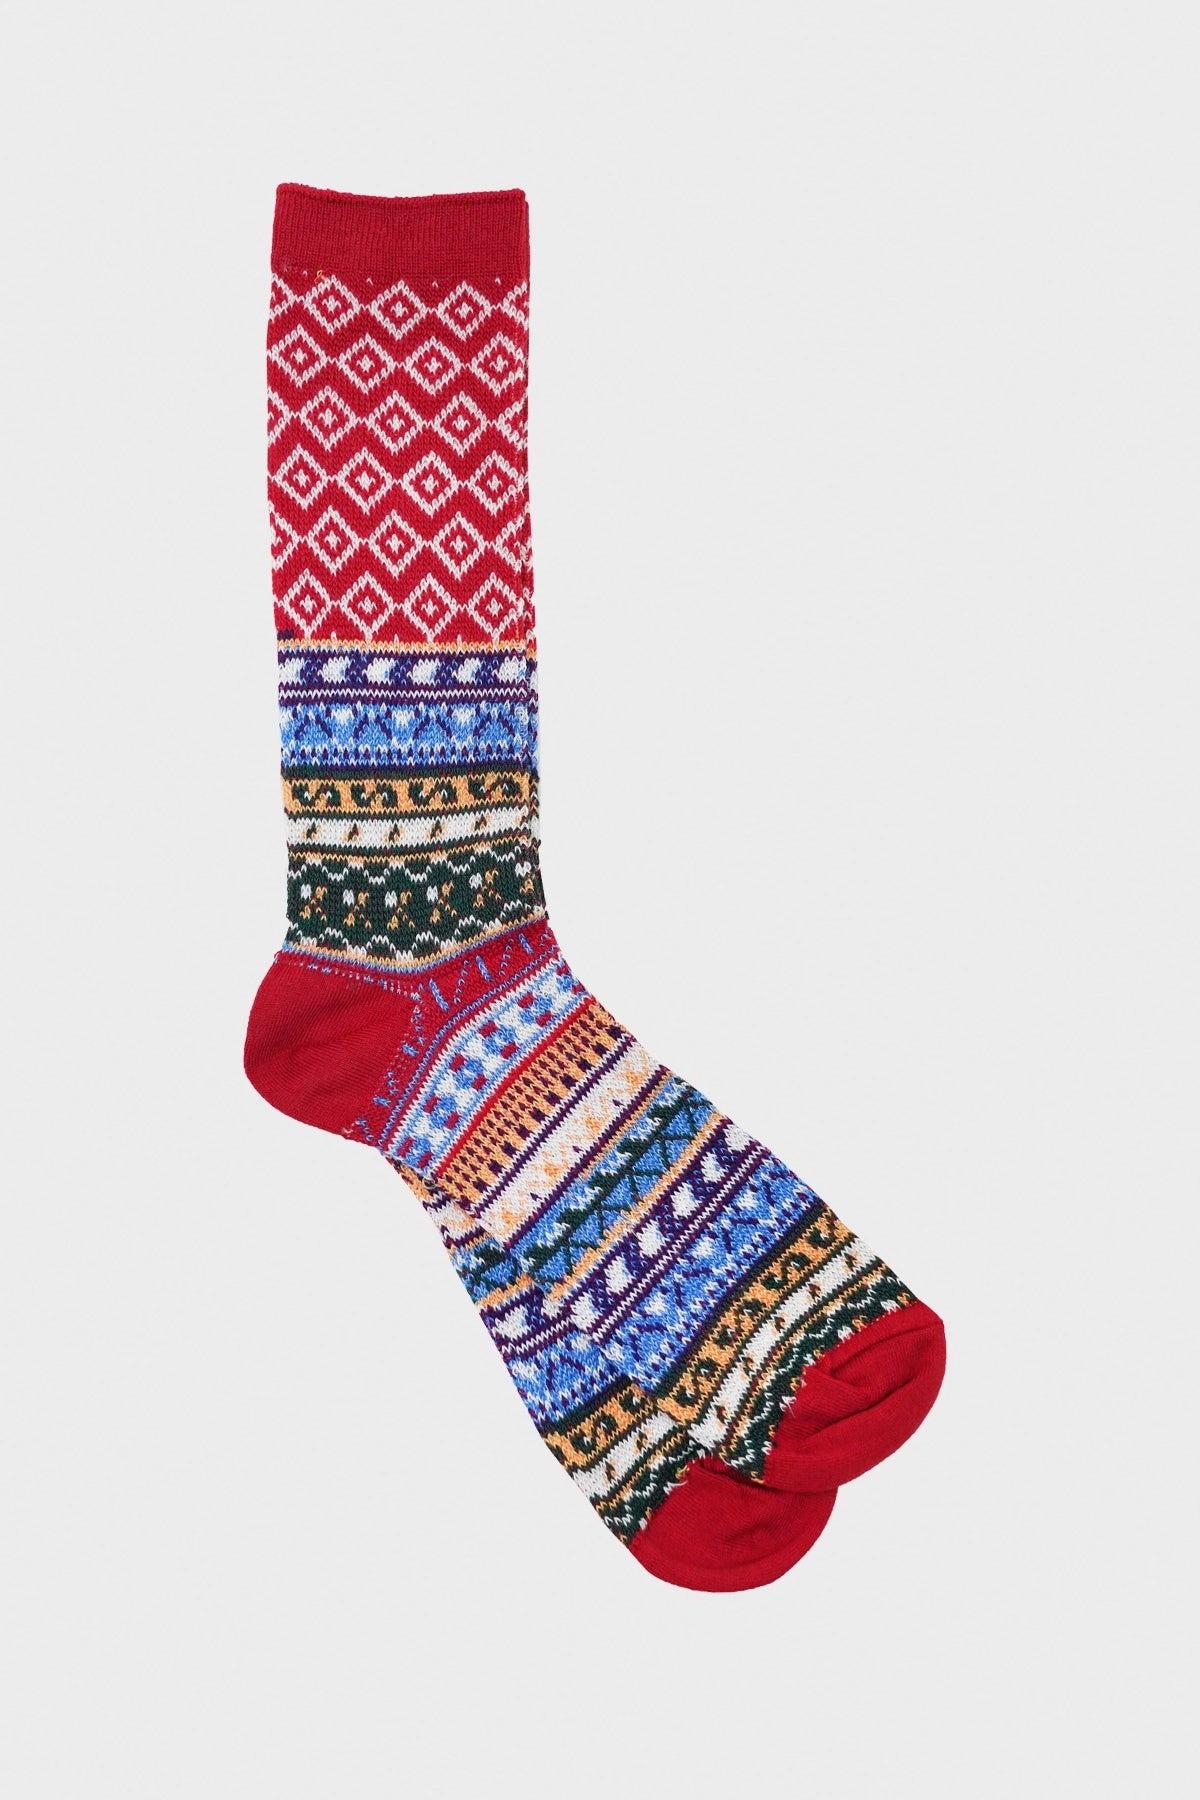 Anonymous Ism - Fairisle Jacquard Crew - Red - Canoe Club